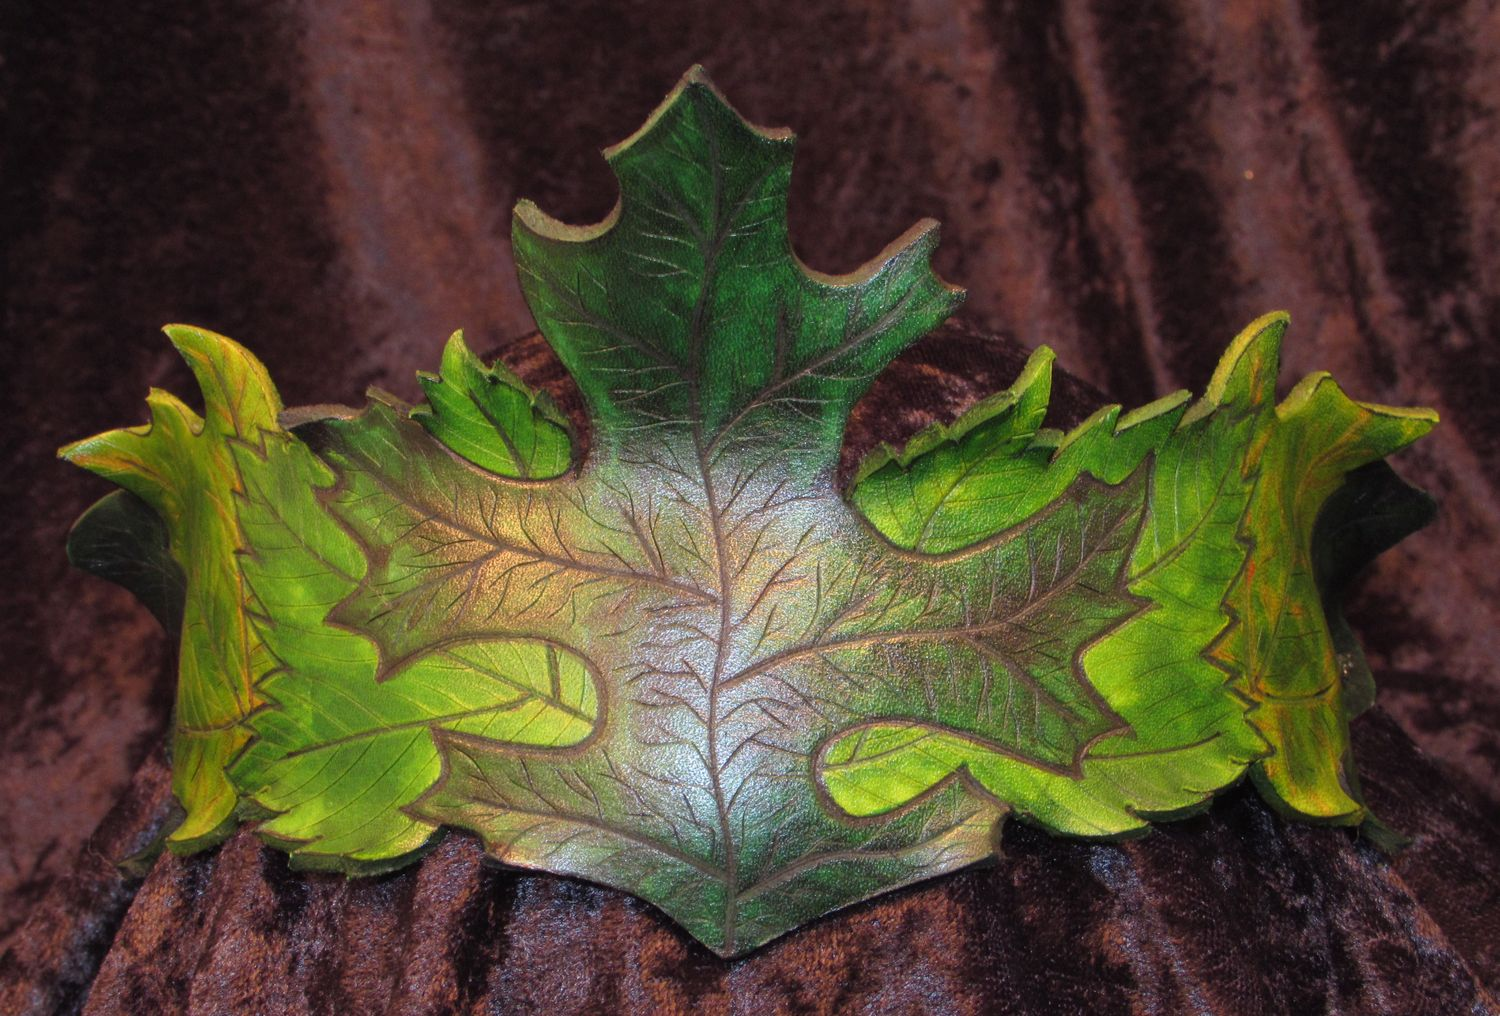 Dryad Crown - $90